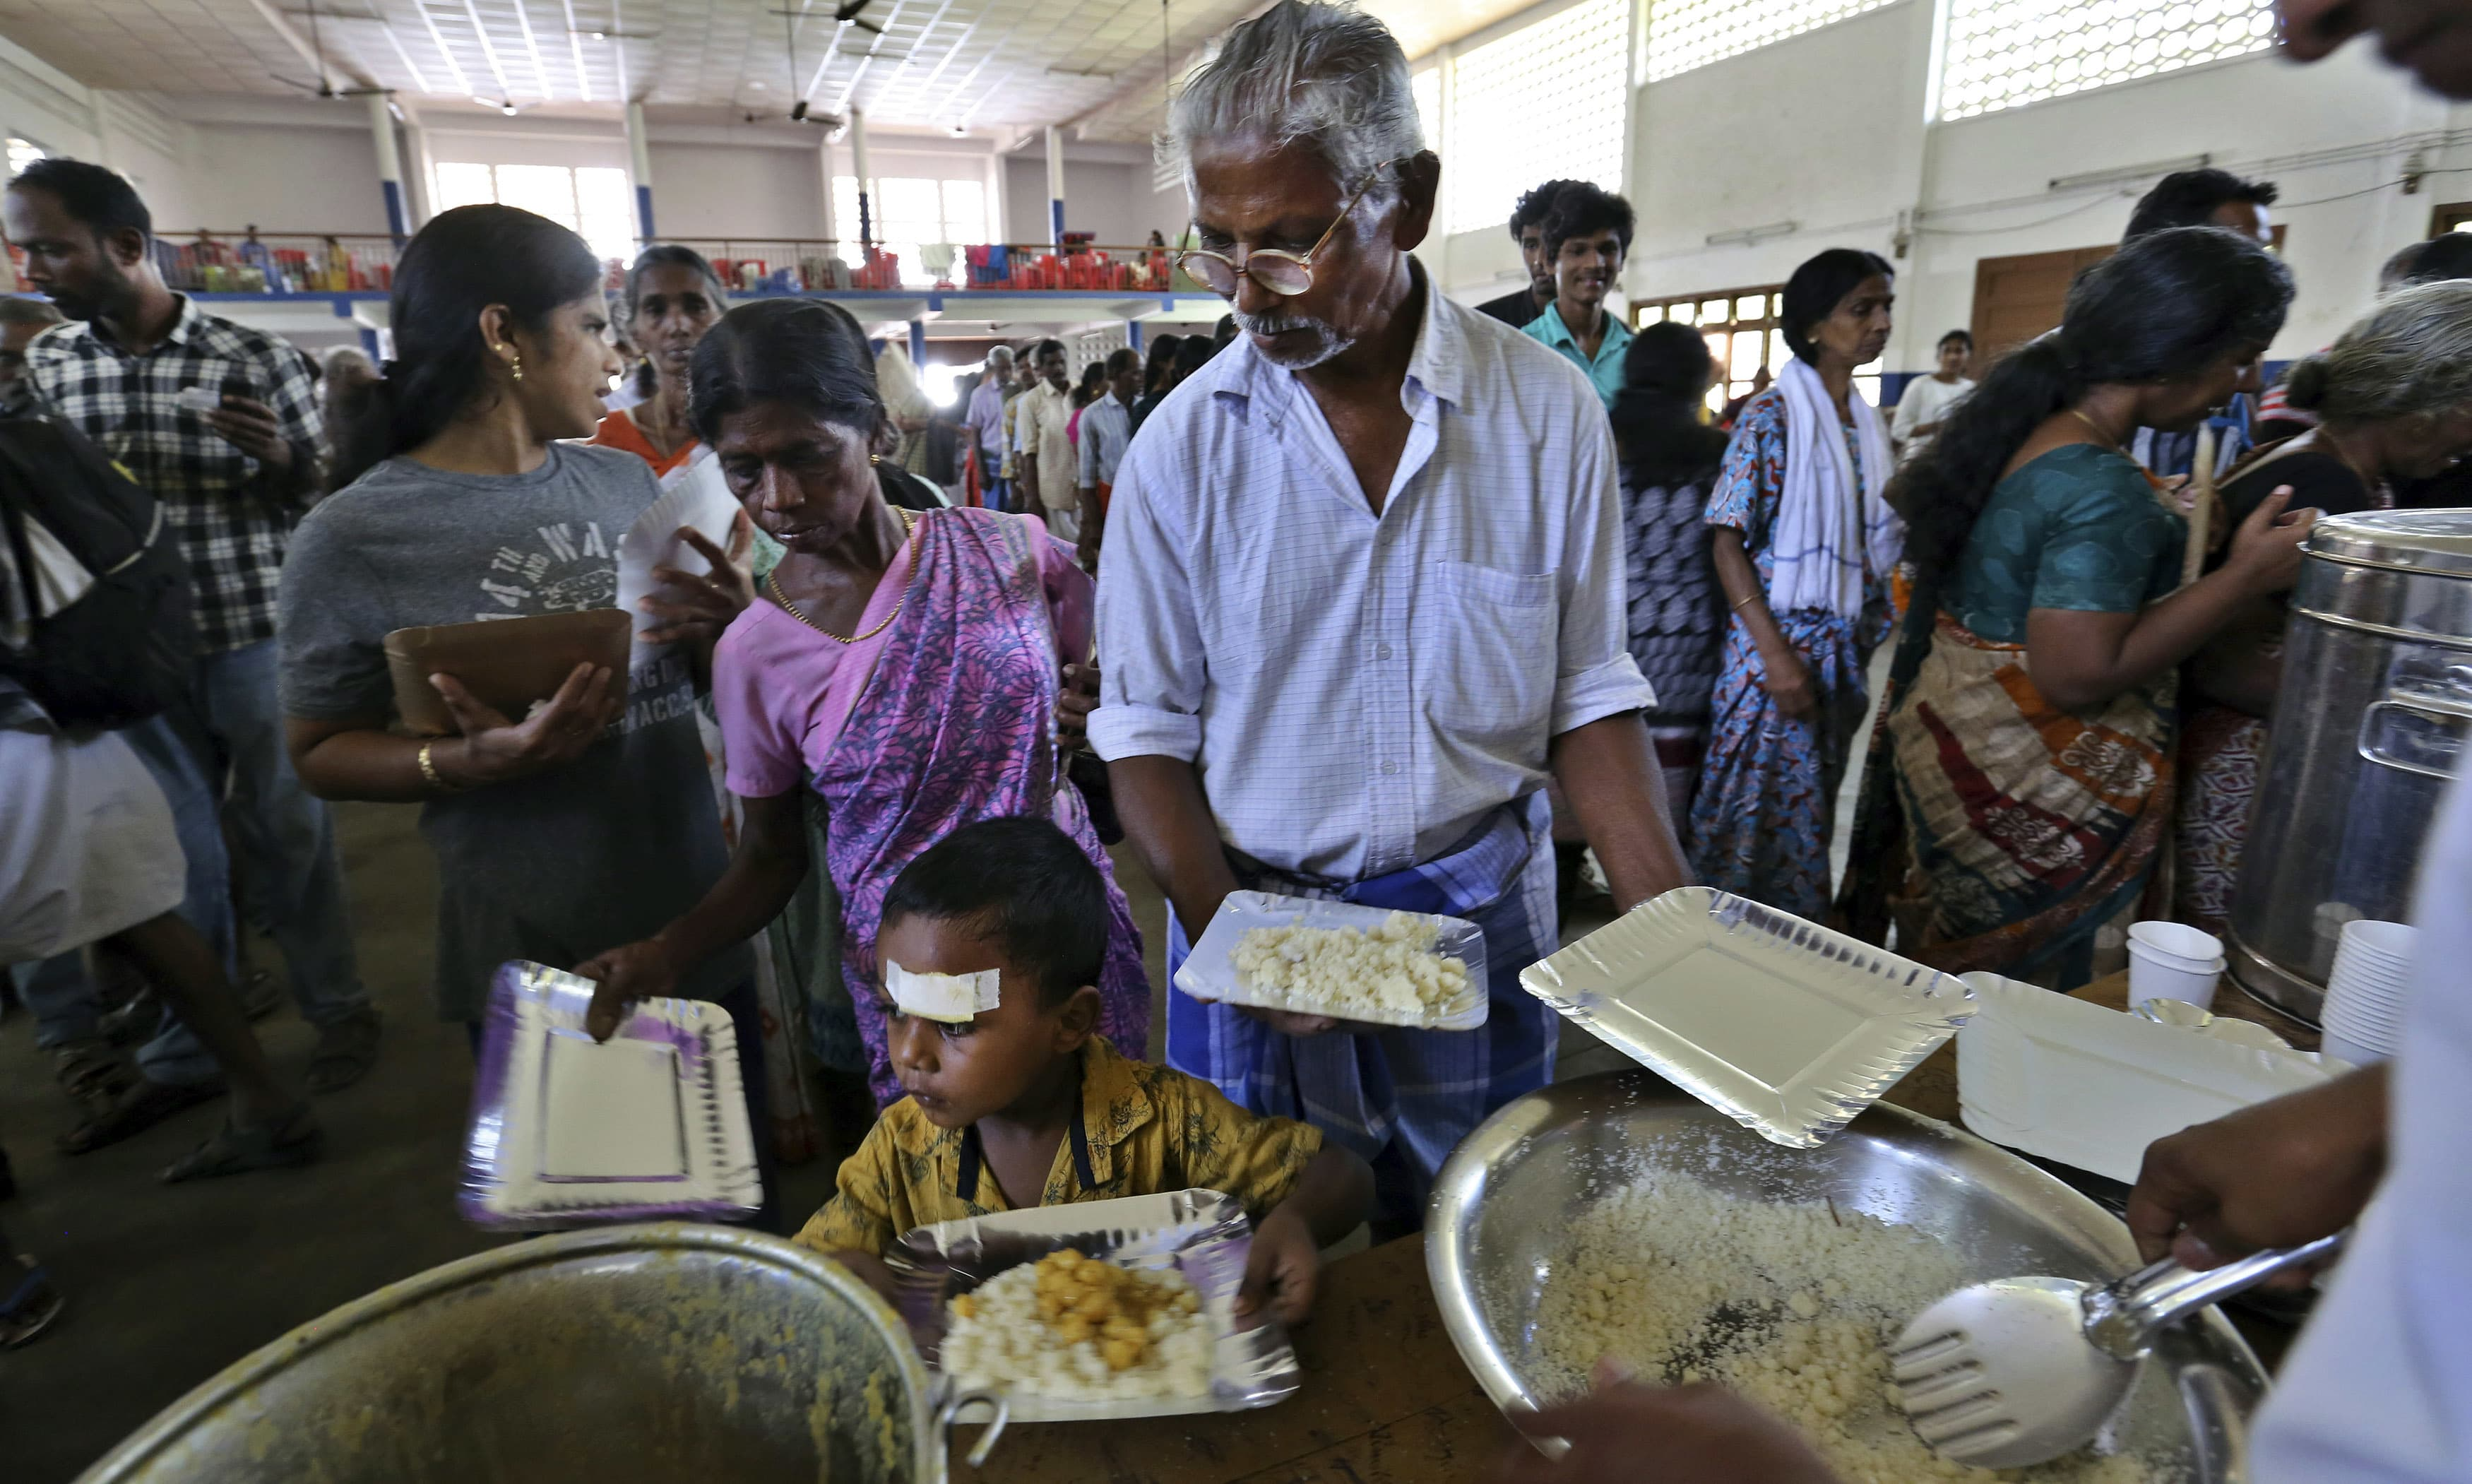 Flood affected people receive food at a relief camp set up inside a school in Kochi, in the southern state of Kerala. —AFP